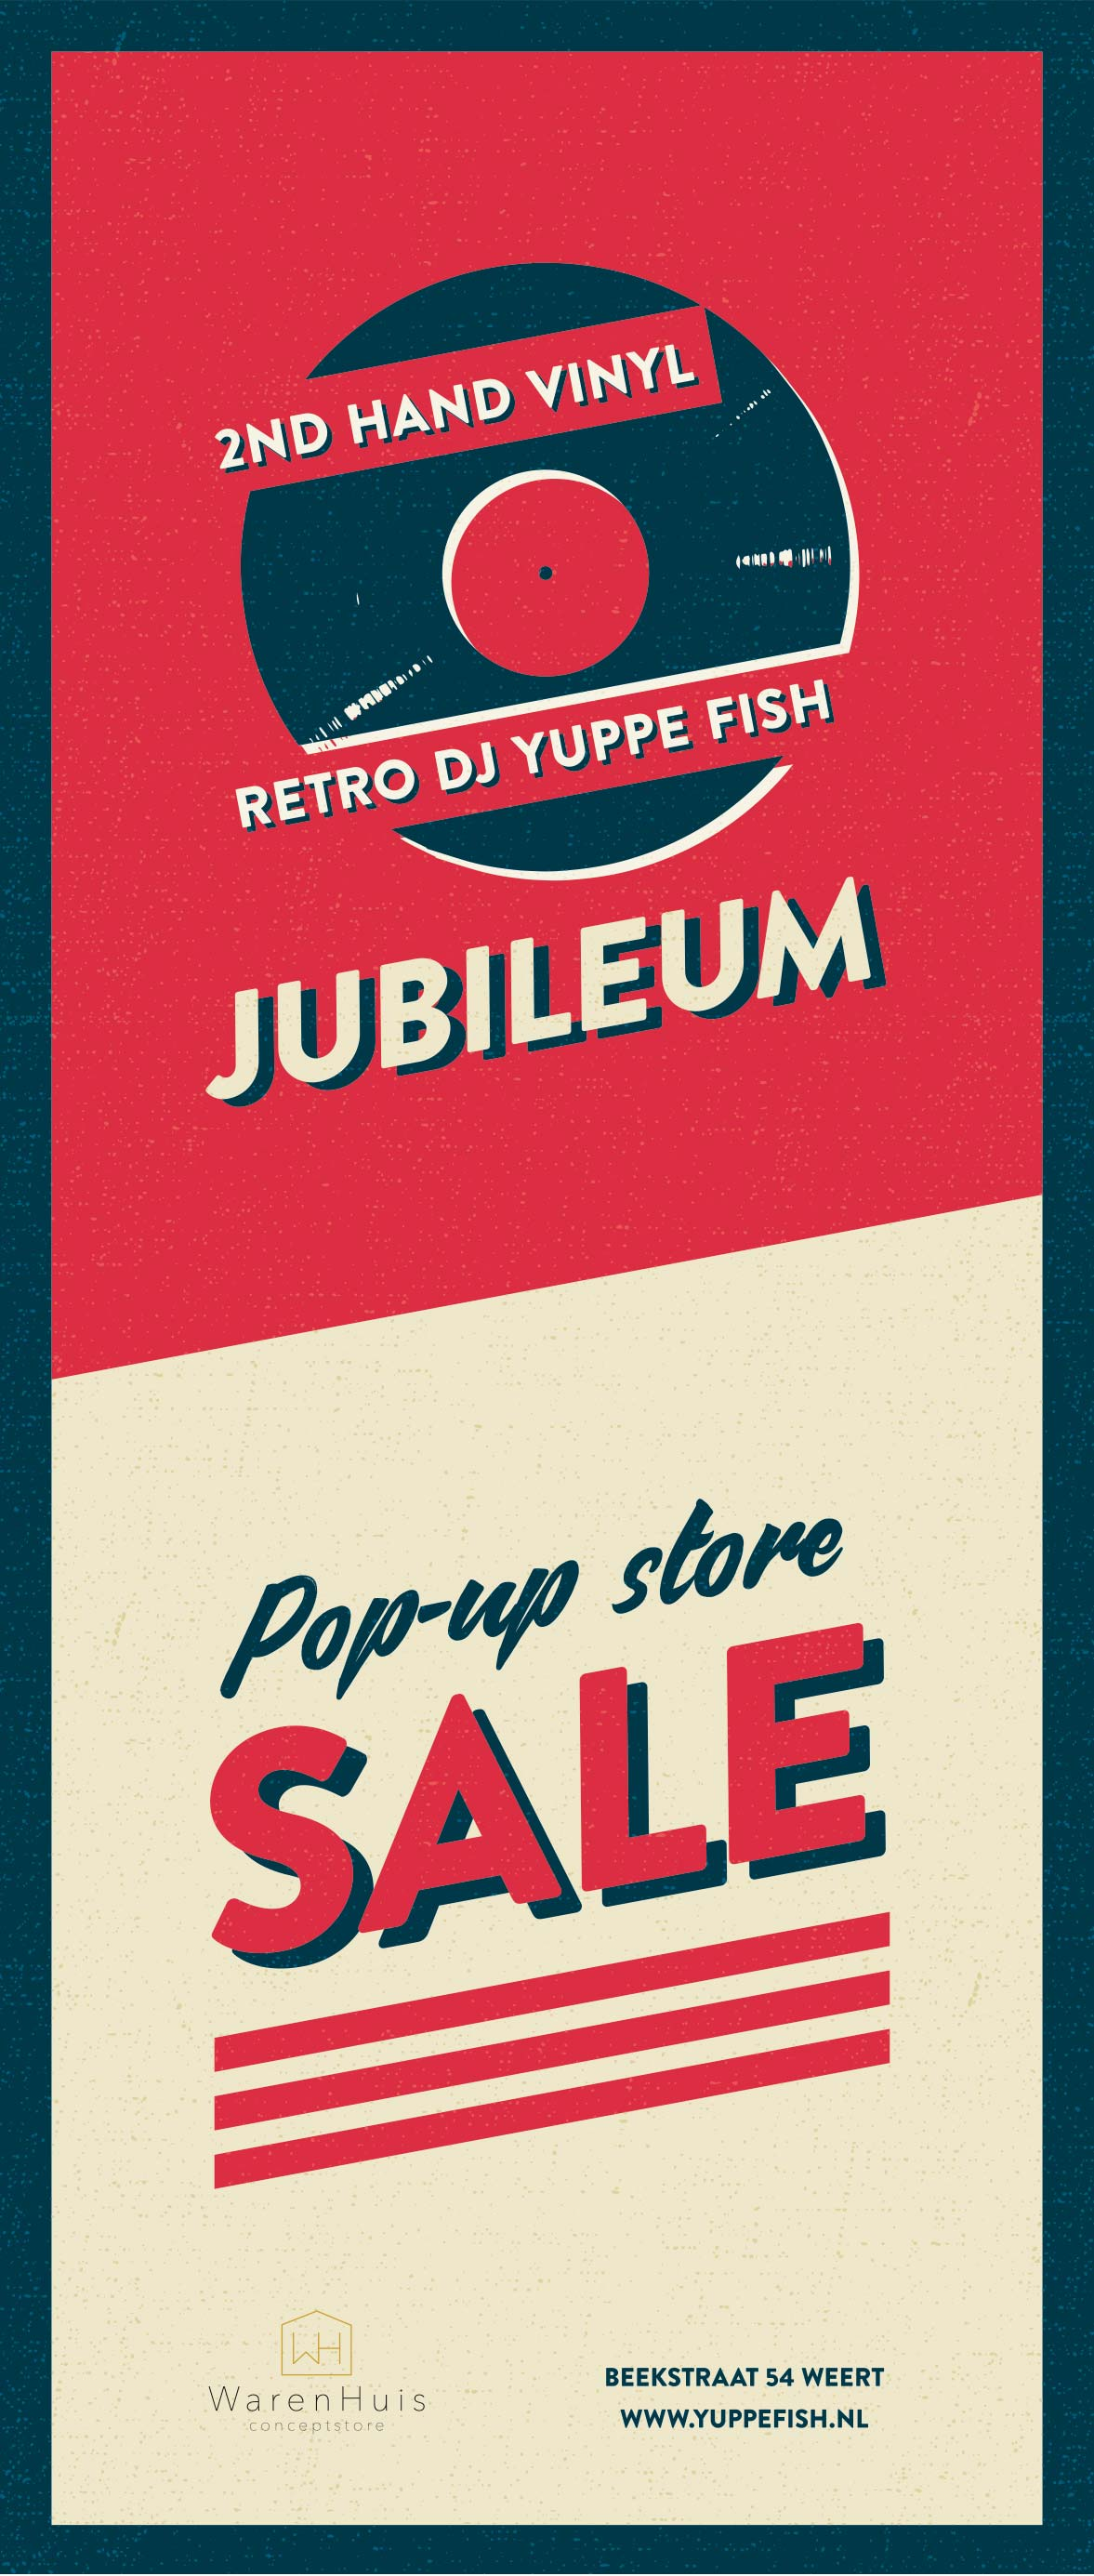 Jubileum Retro DJ Yuppe Fish tweedehands lp's.